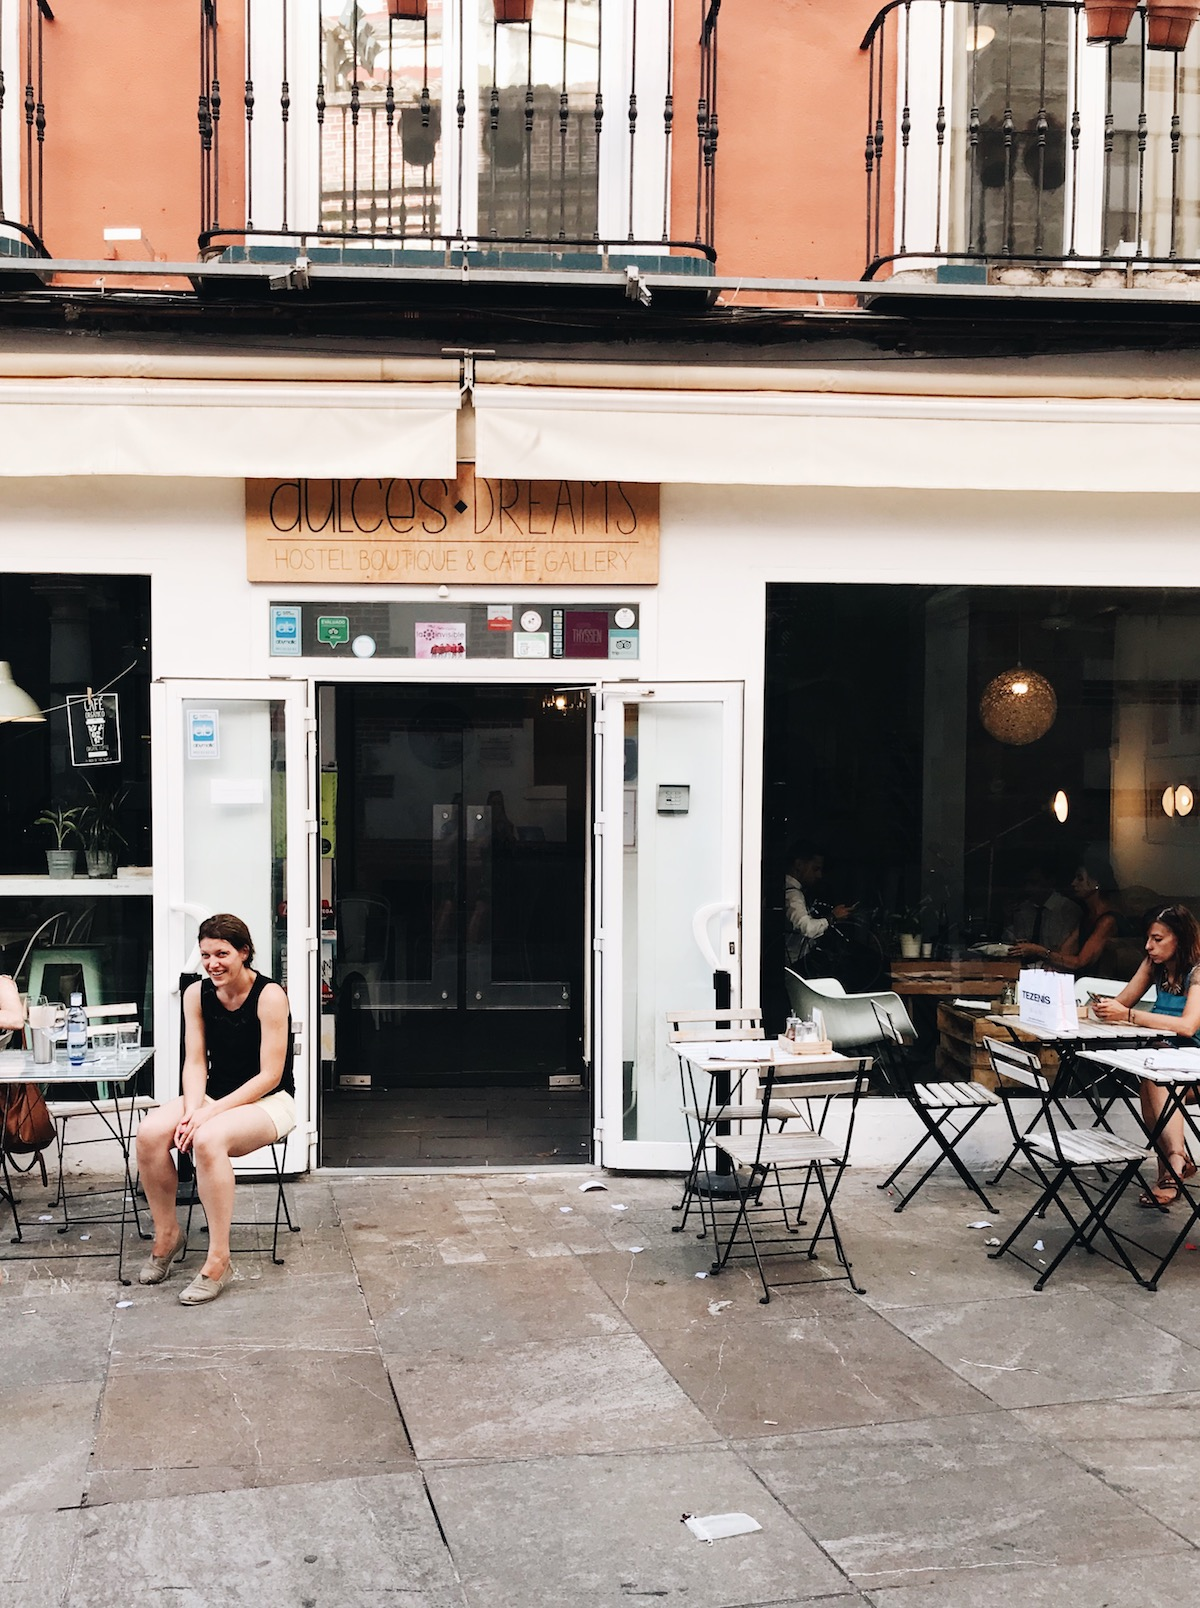 DUlce Dreams Cafe   A Handful of Favorite Cafes + Eats in Malaga, Spain   Ruby Josephine